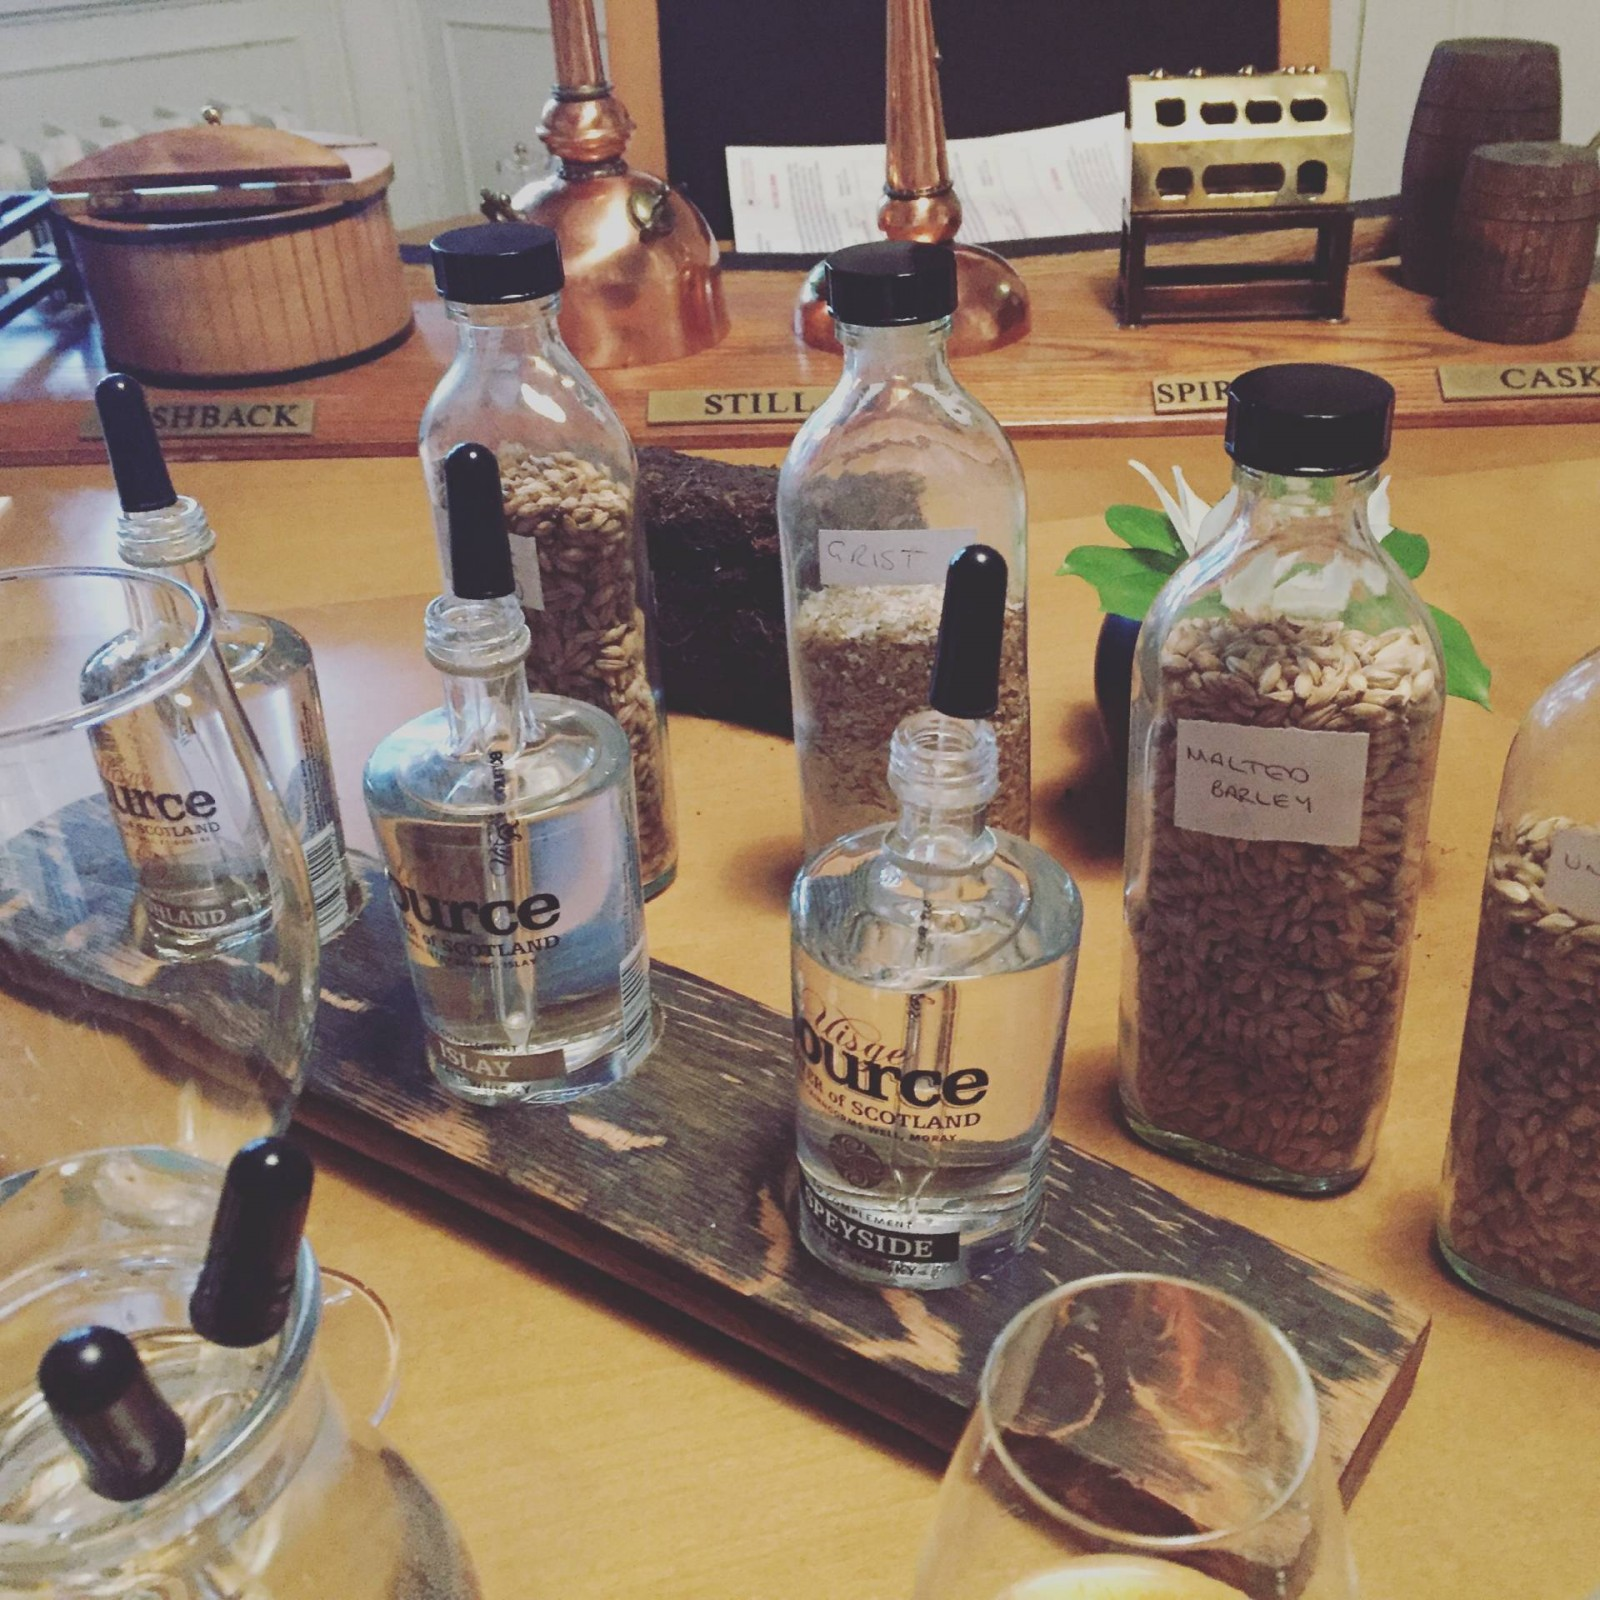 An educational evening at the Scotch Malt Whisky Society…